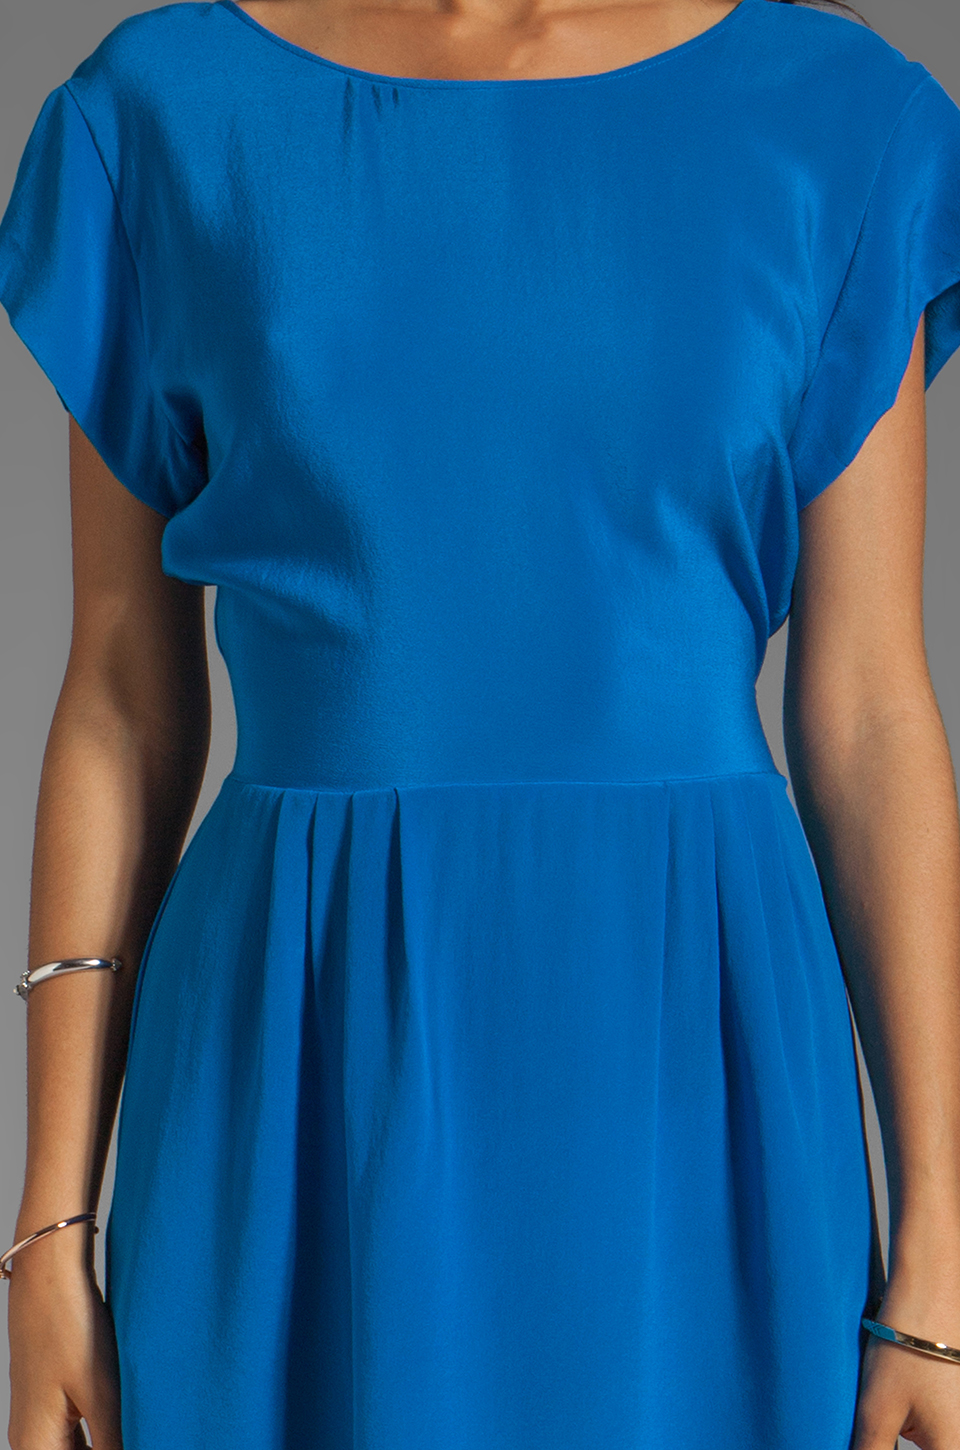 Backstage Serena Dress in Electric